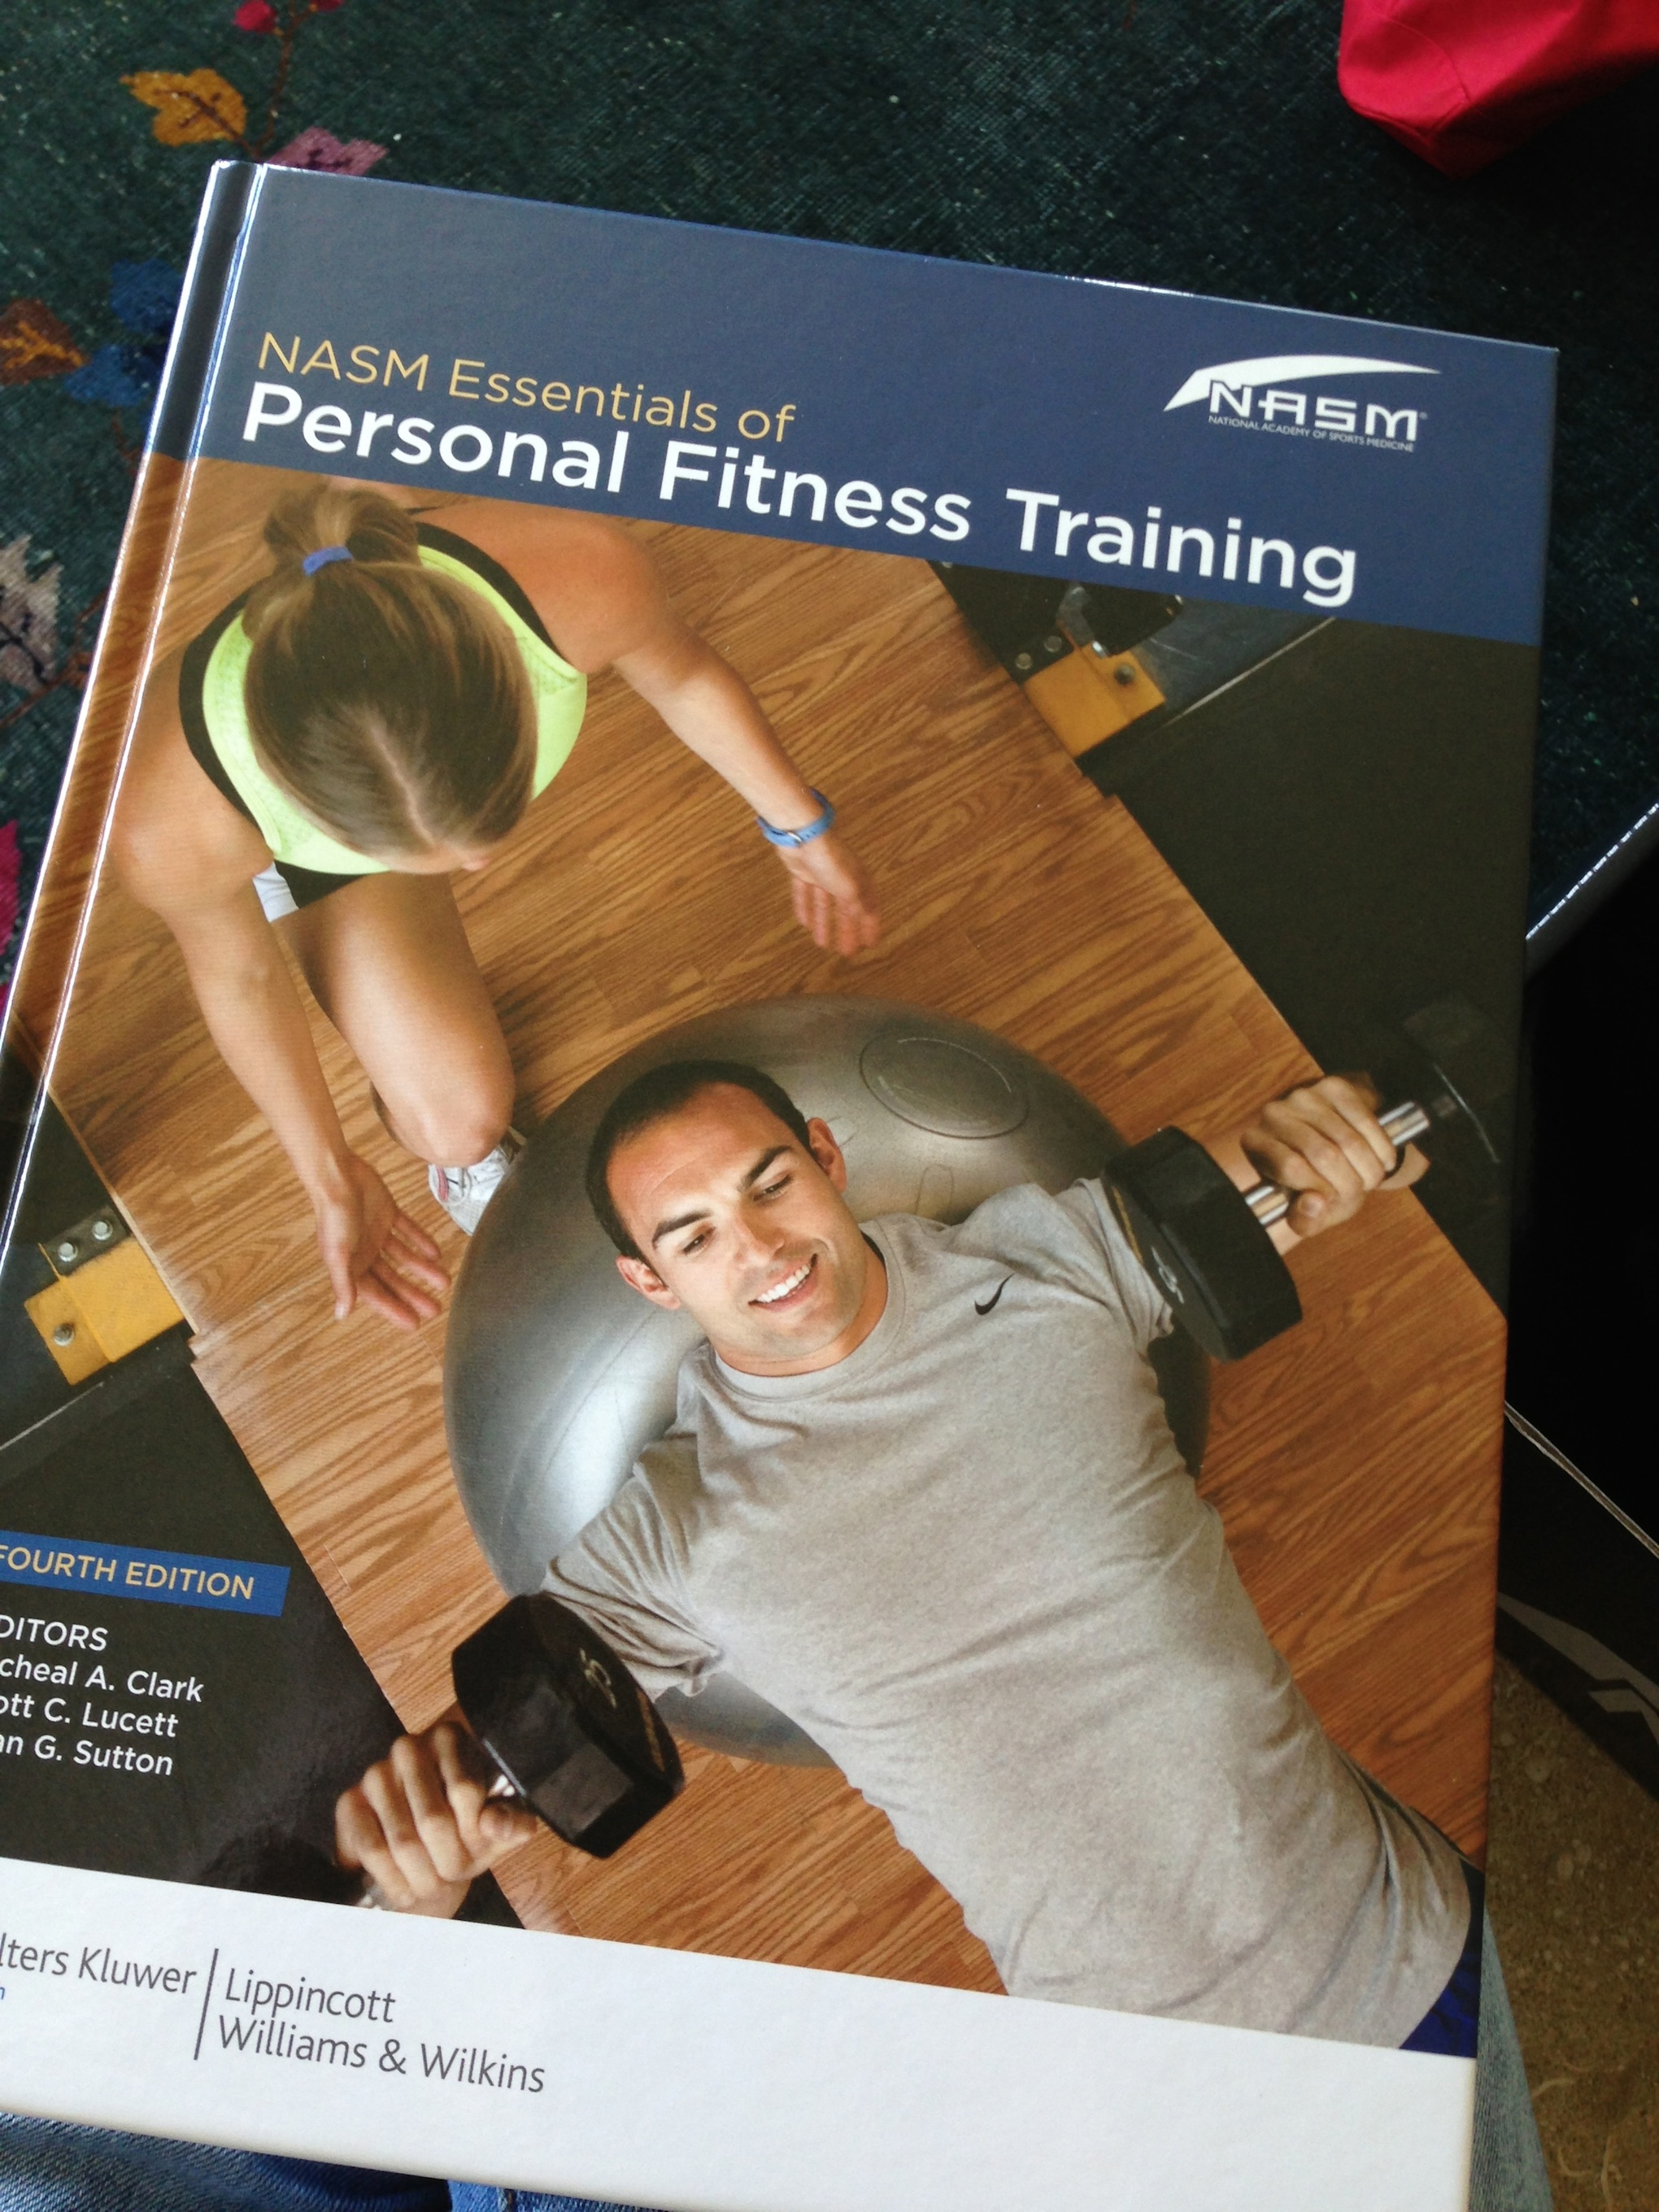 Nasm certified personal training wrecking routine on top of that nasm offers an online elearning center complete with videos of chapter contents review activities a qa forum and weekly emails of 1betcityfo Choice Image